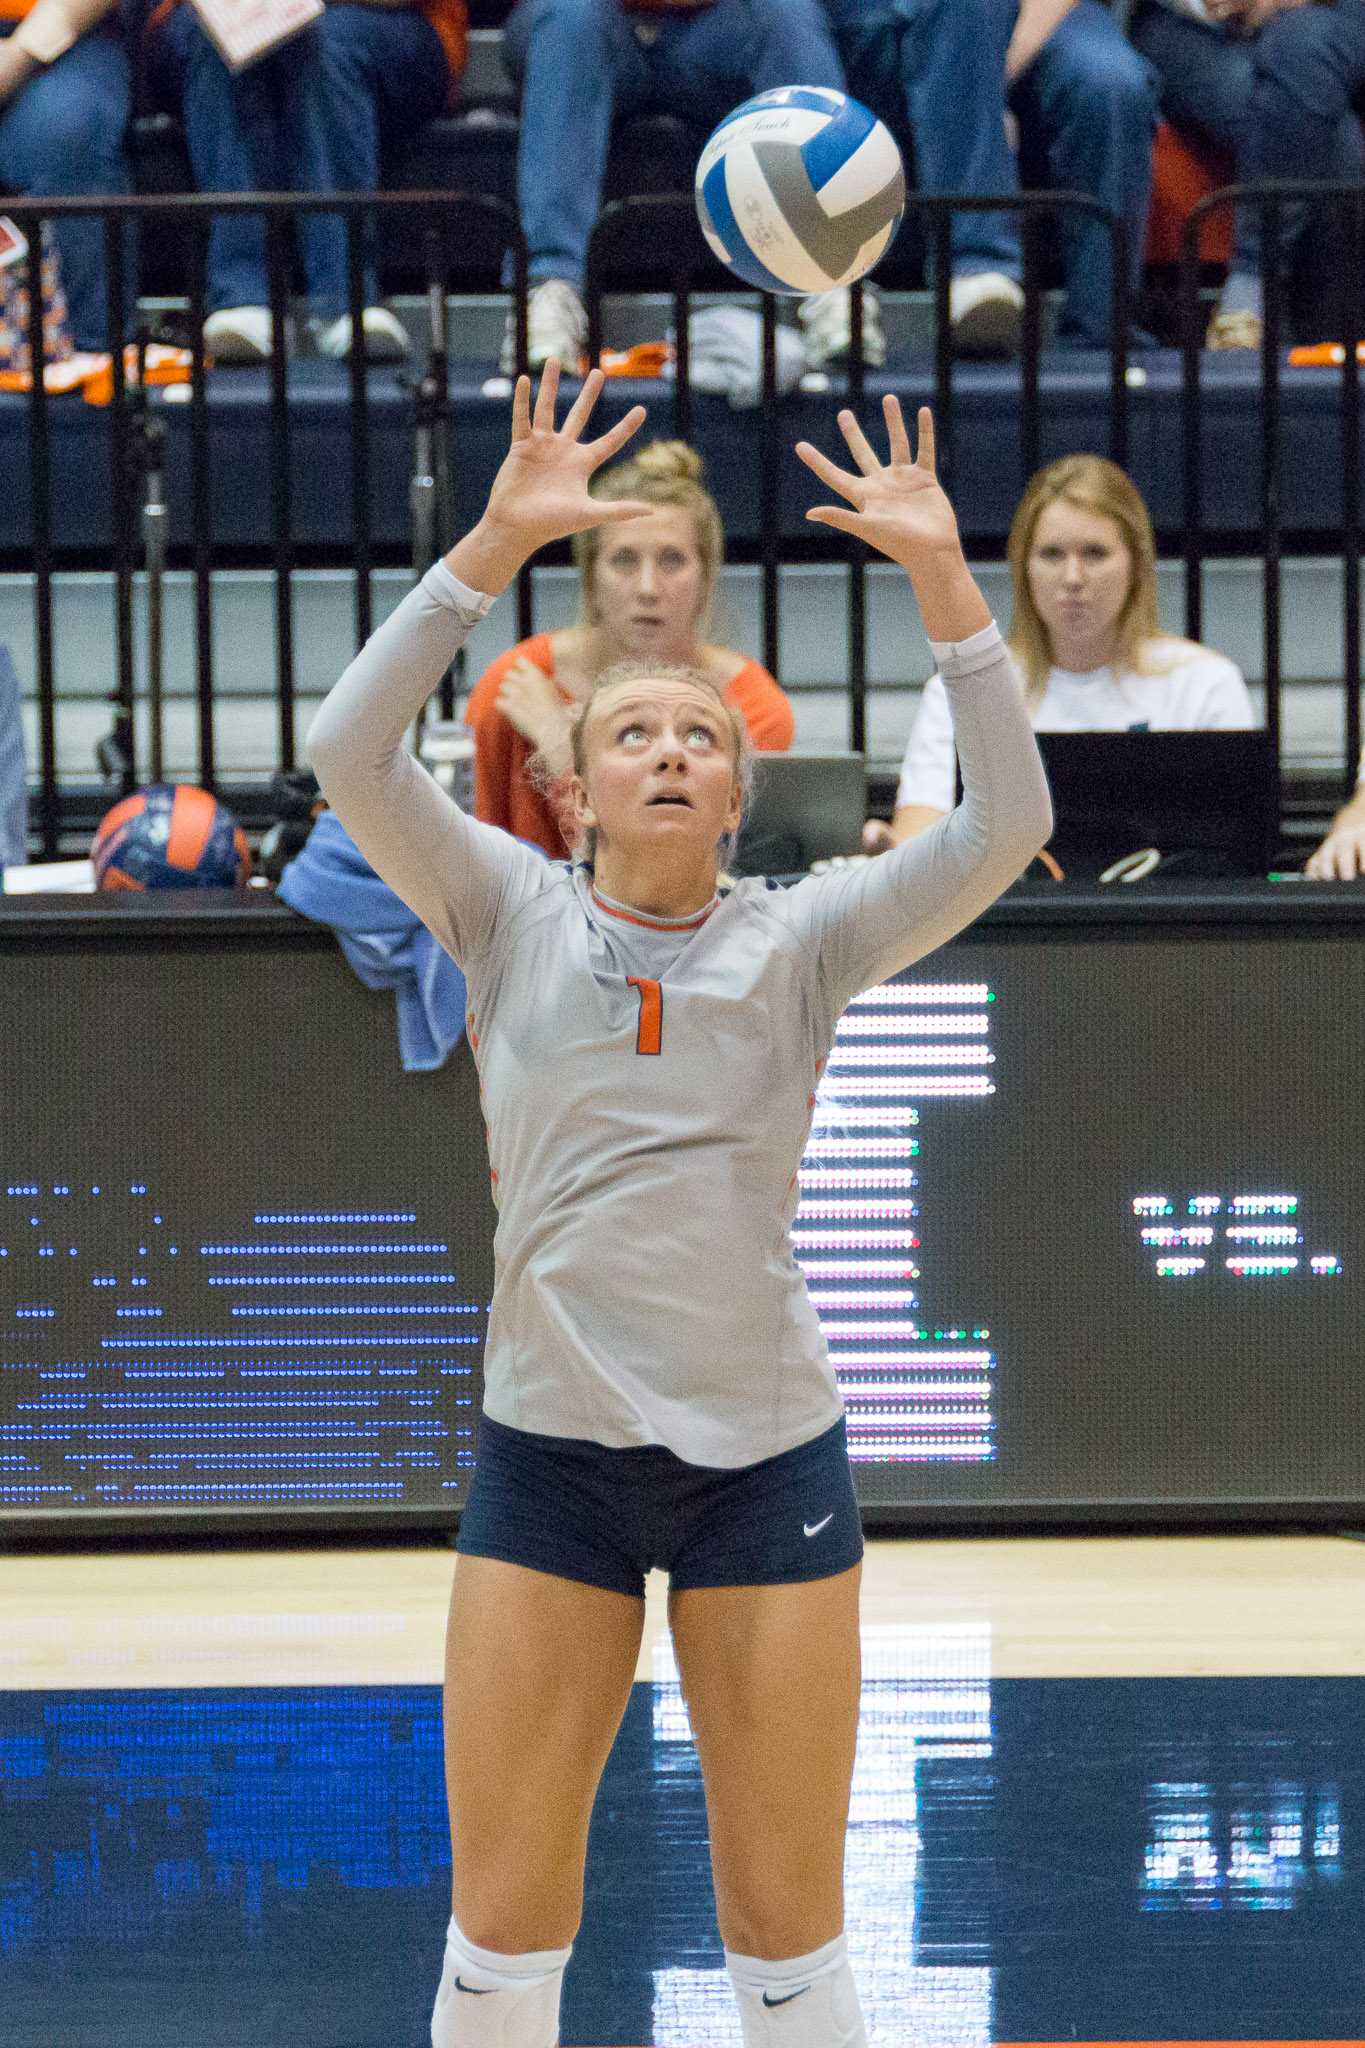 Illinois' Jordyn Poulter sets the ball during the match against Northwestern at Huff Hall on Saturday, October 15. The Illini won 3-0.